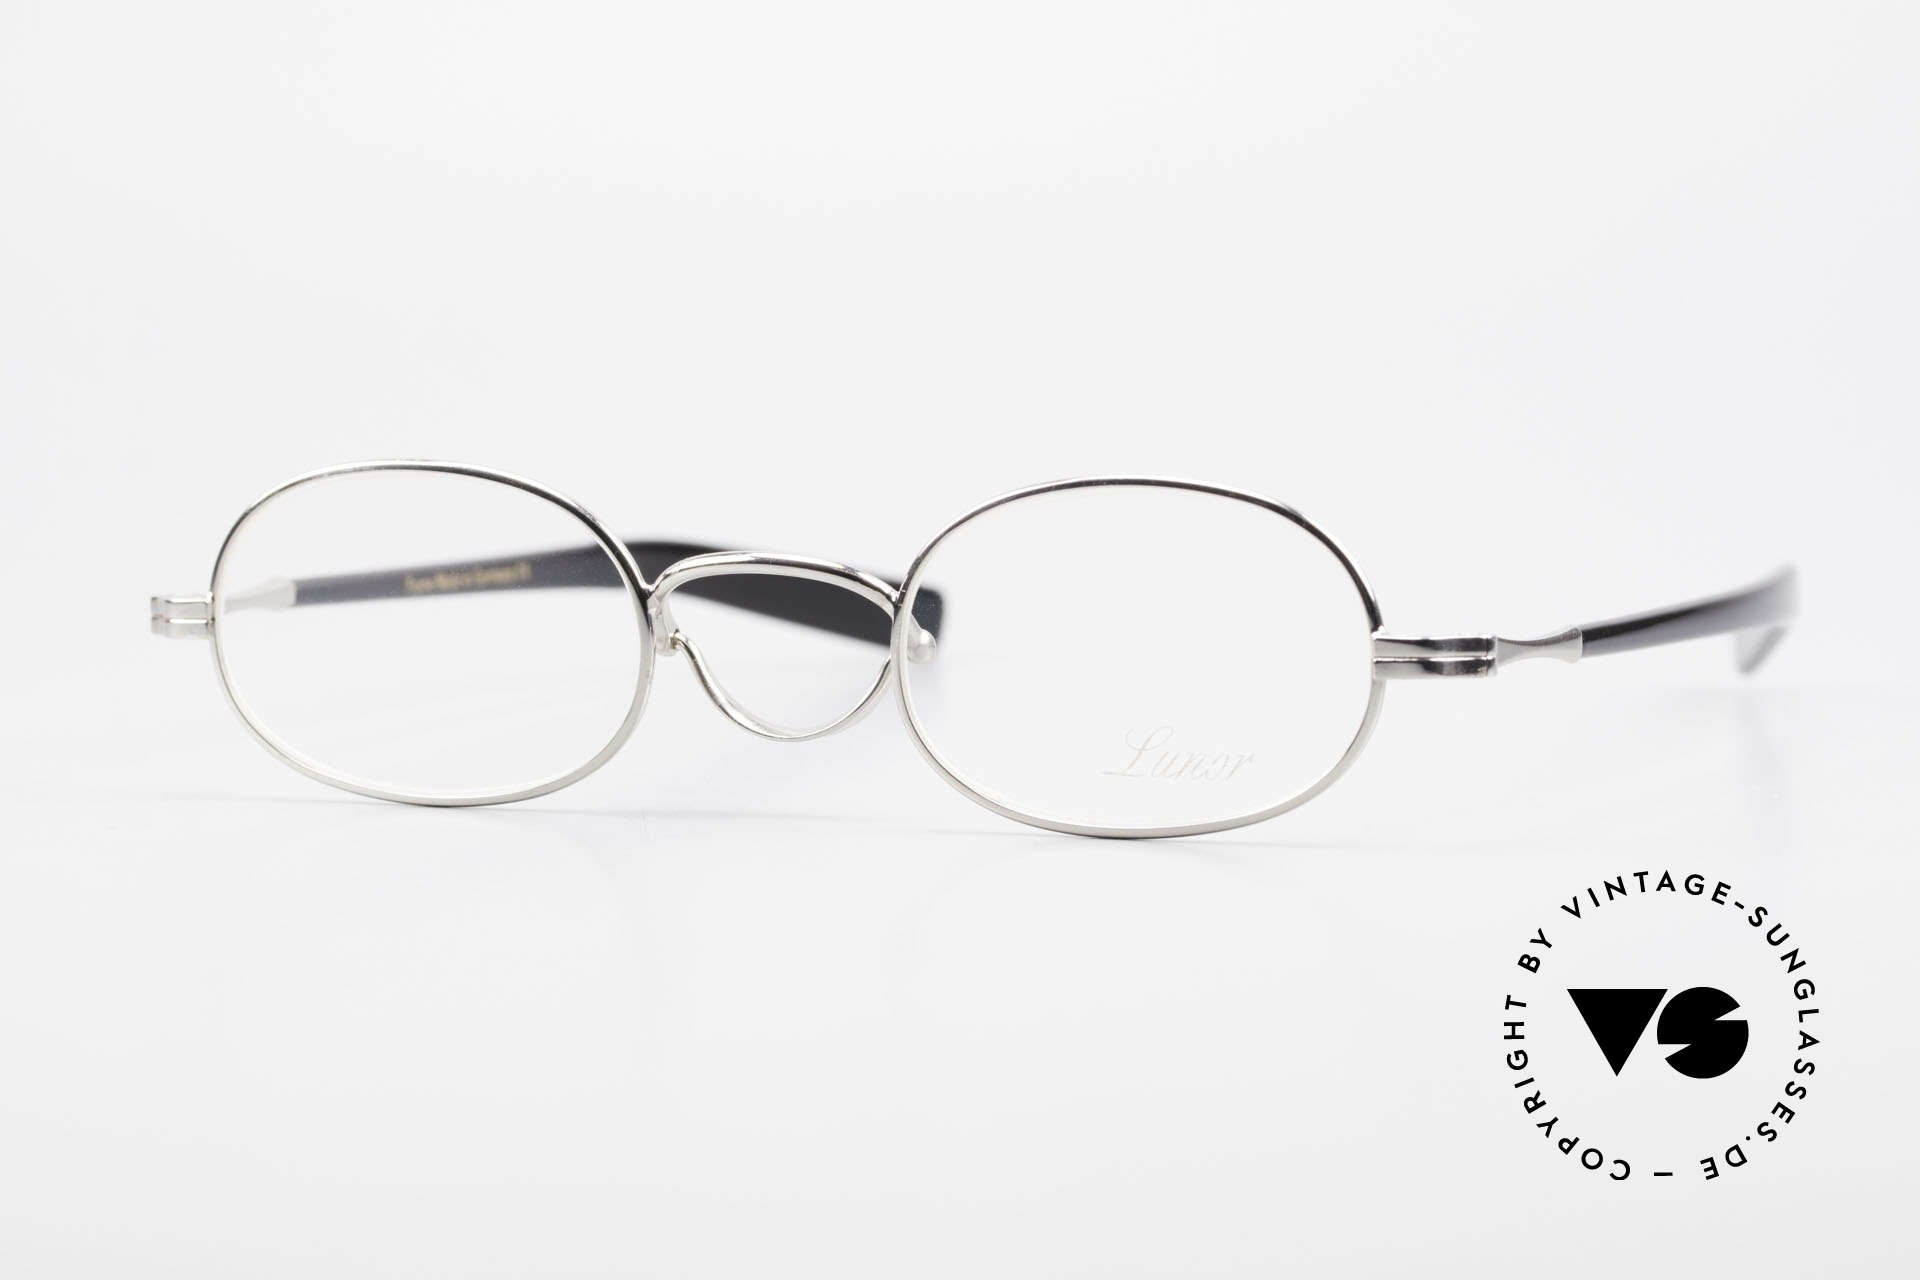 """Lunor Swing A 36 Oval Swing Bridge Vintage Glasses, LUNOR: shortcut for French """"Lunette d'Or"""" (gold glasses), Made for Men and Women"""